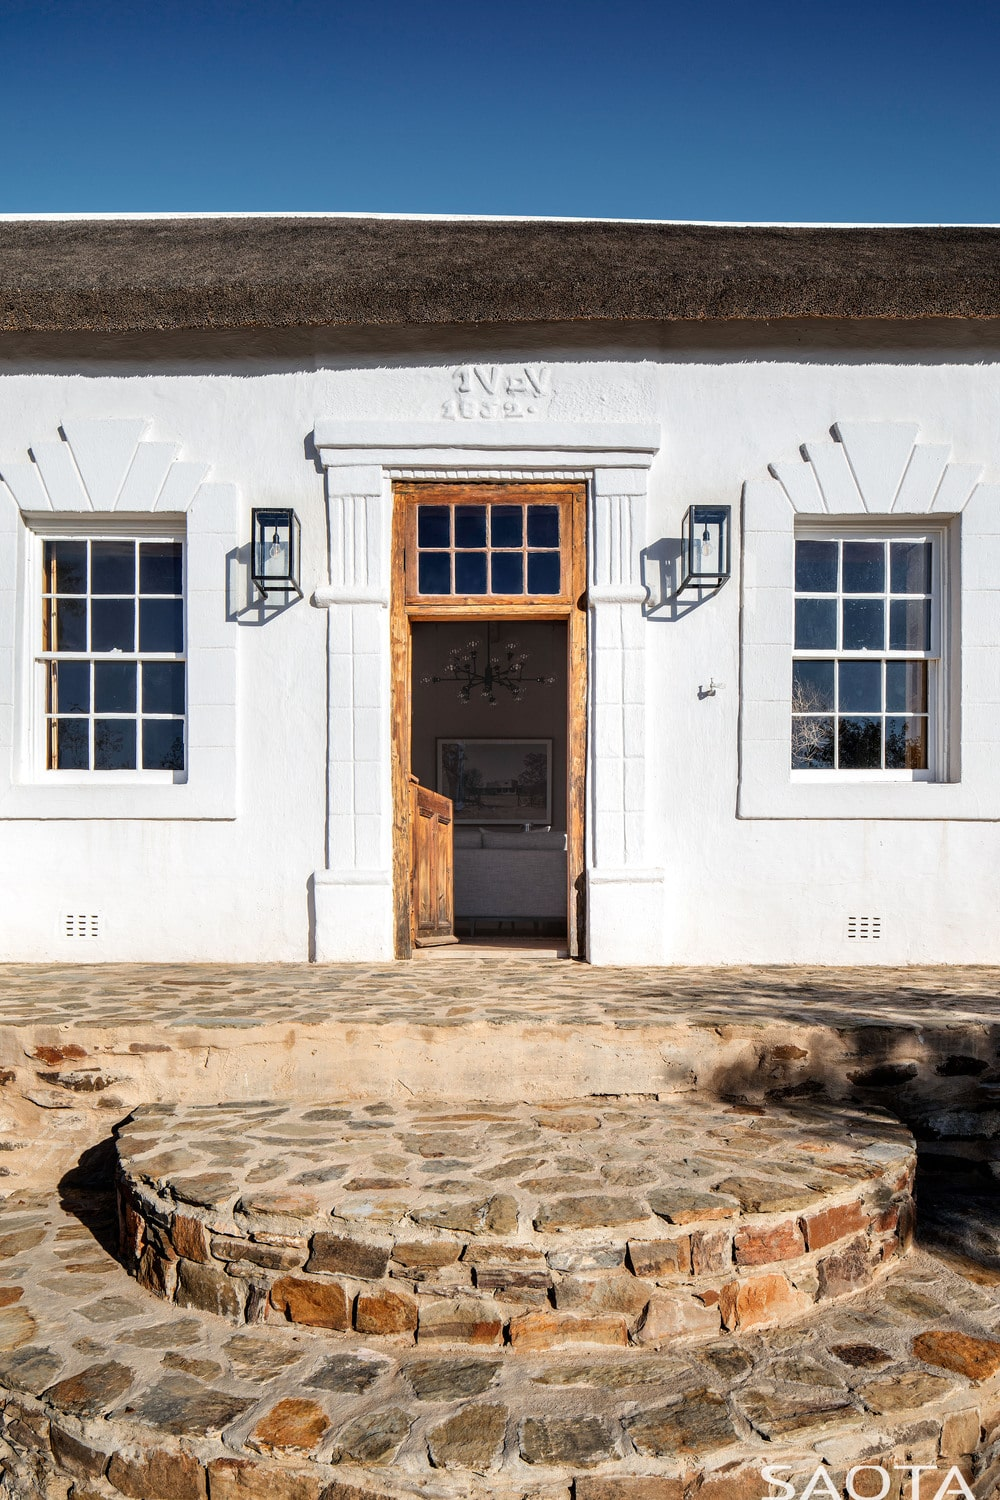 This is the main entrance of one of the houses with a couple of rustic stone steps and wooden main door flanked by wall lamps.